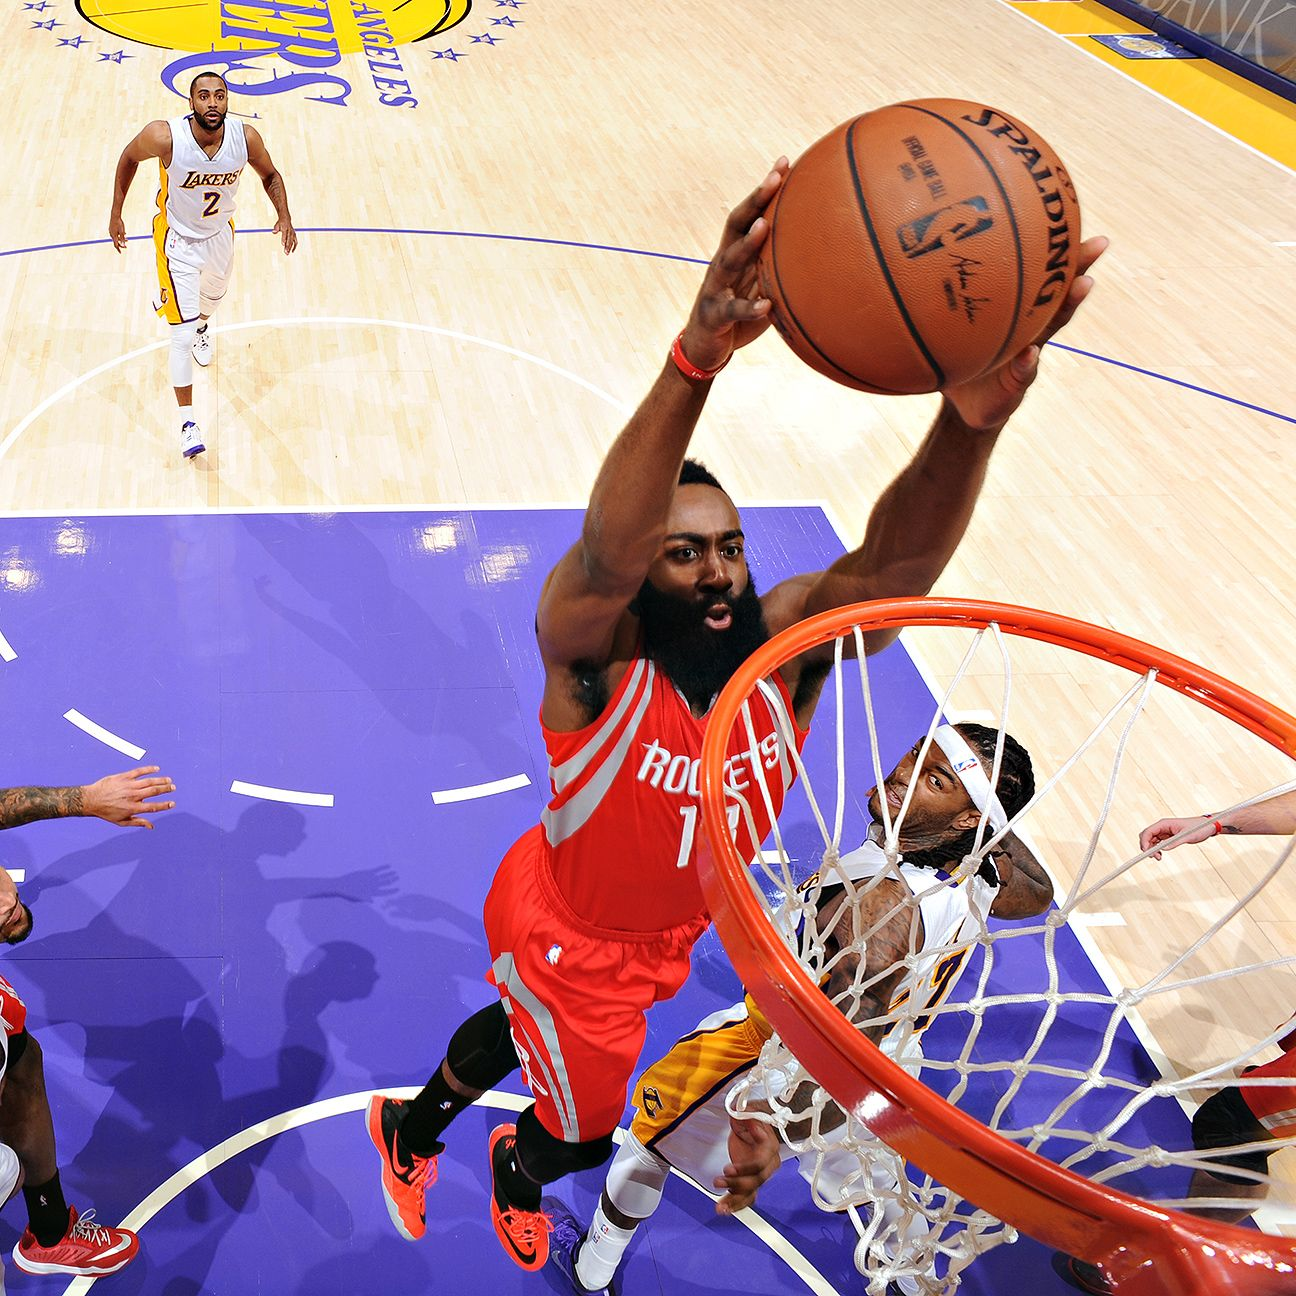 James Harden Free Agency: James Harden, Kyle Korver Among Top 'role Stars'